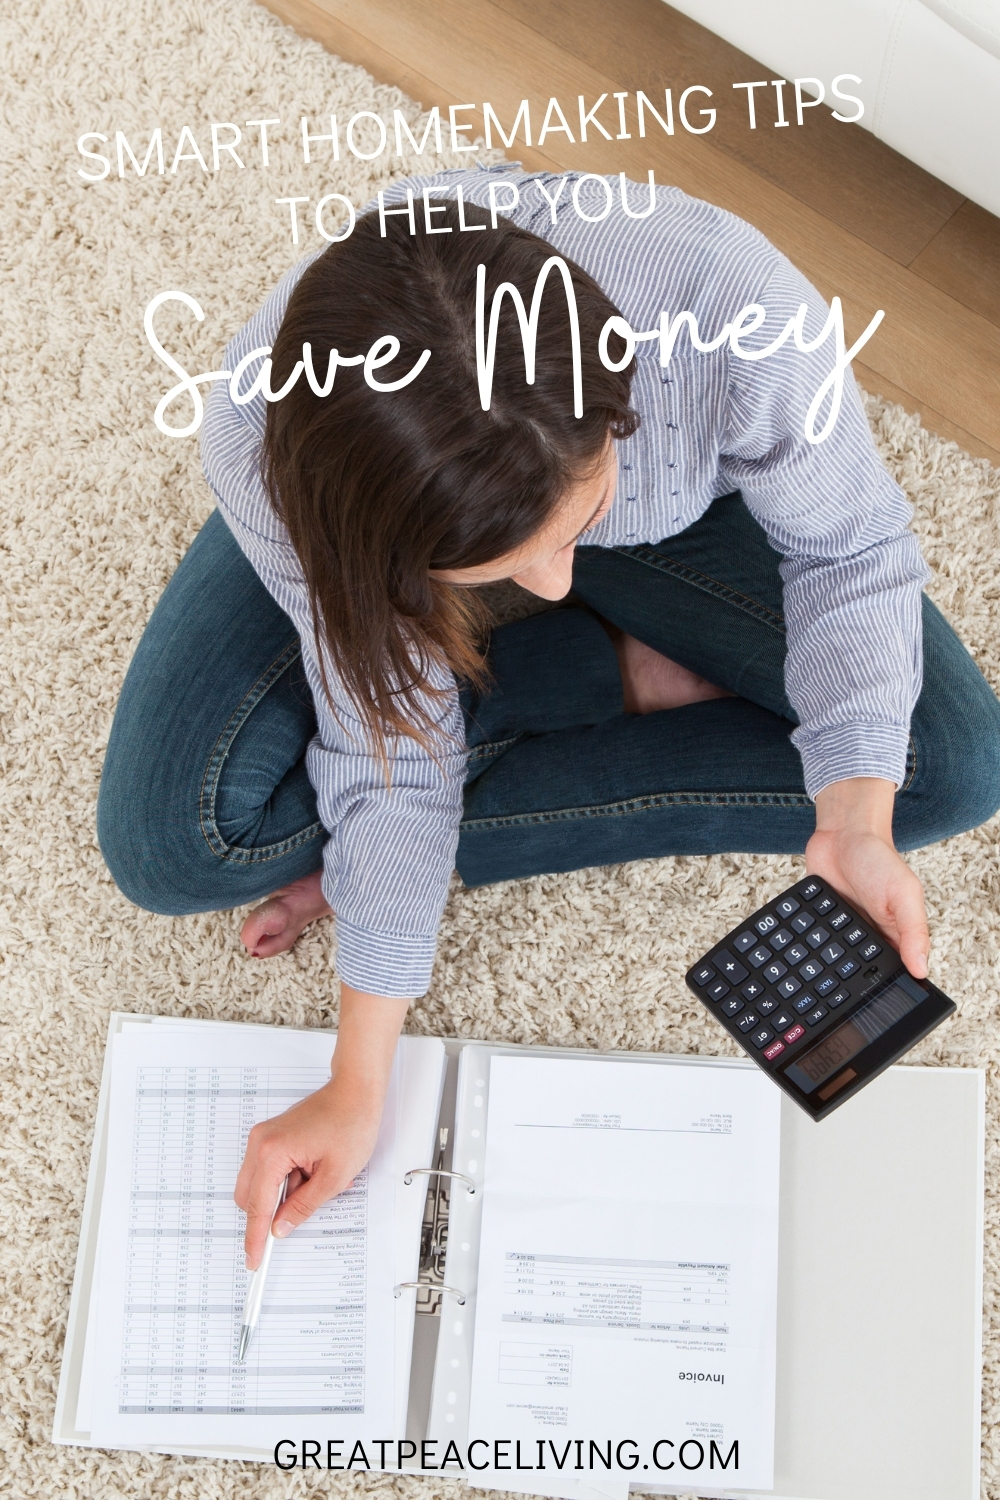 Smart Homemaking Tips to Help You Save Money | GreatPeaceLiving.com #homemaking #household #savemoney #homemakingtips #moneysavingtips